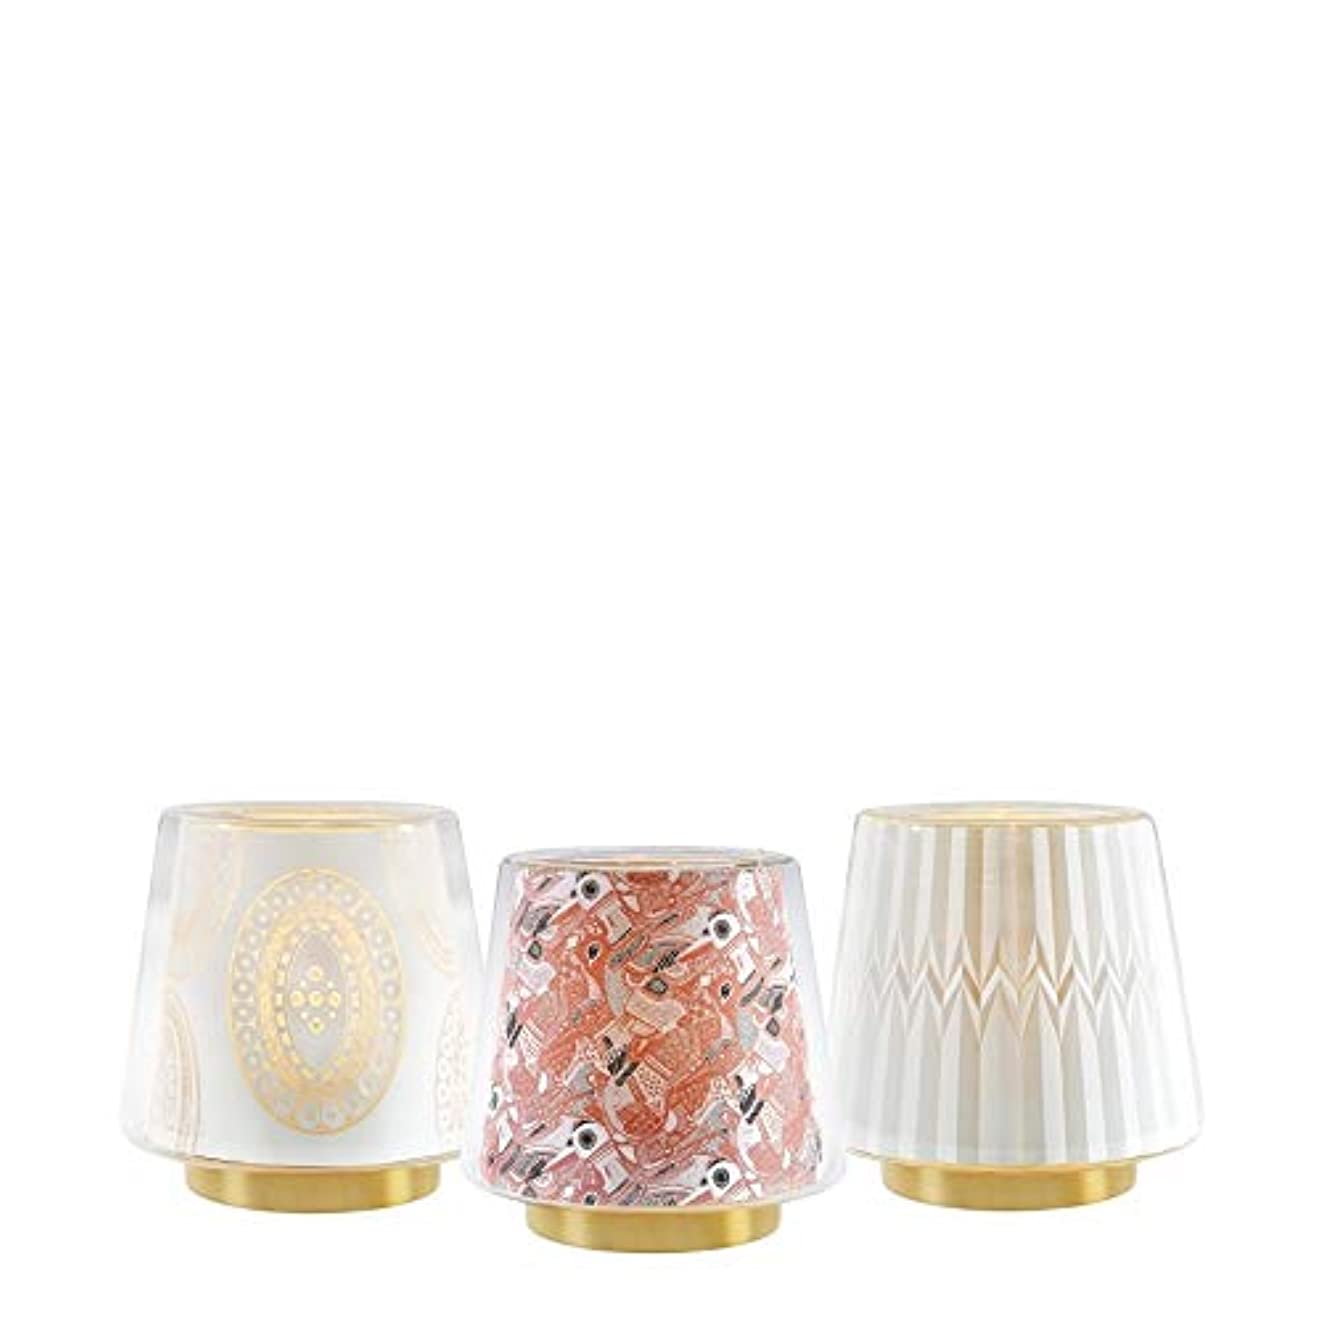 [Diptyque] Diptyque折り紙のキャンドルホルダー - Diptyque Origami Candle Holder [並行輸入品]